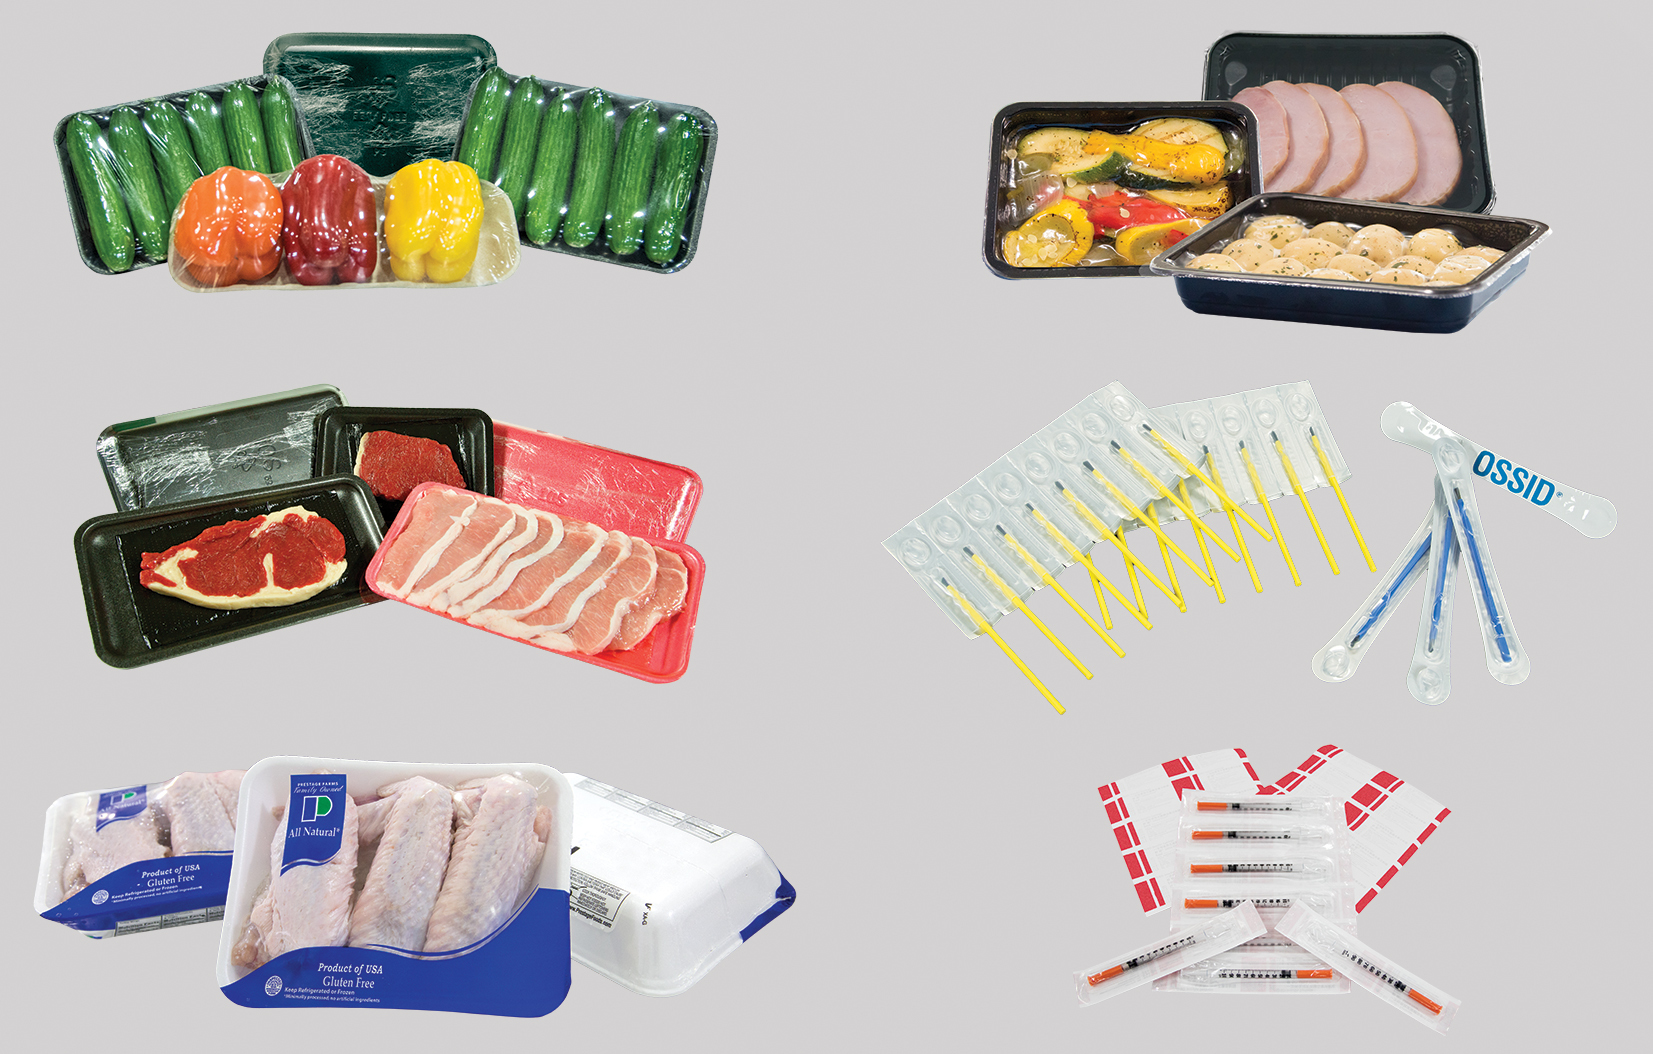 Ossid Showcases Produce Packaging Solutions at Pack Expo 2017